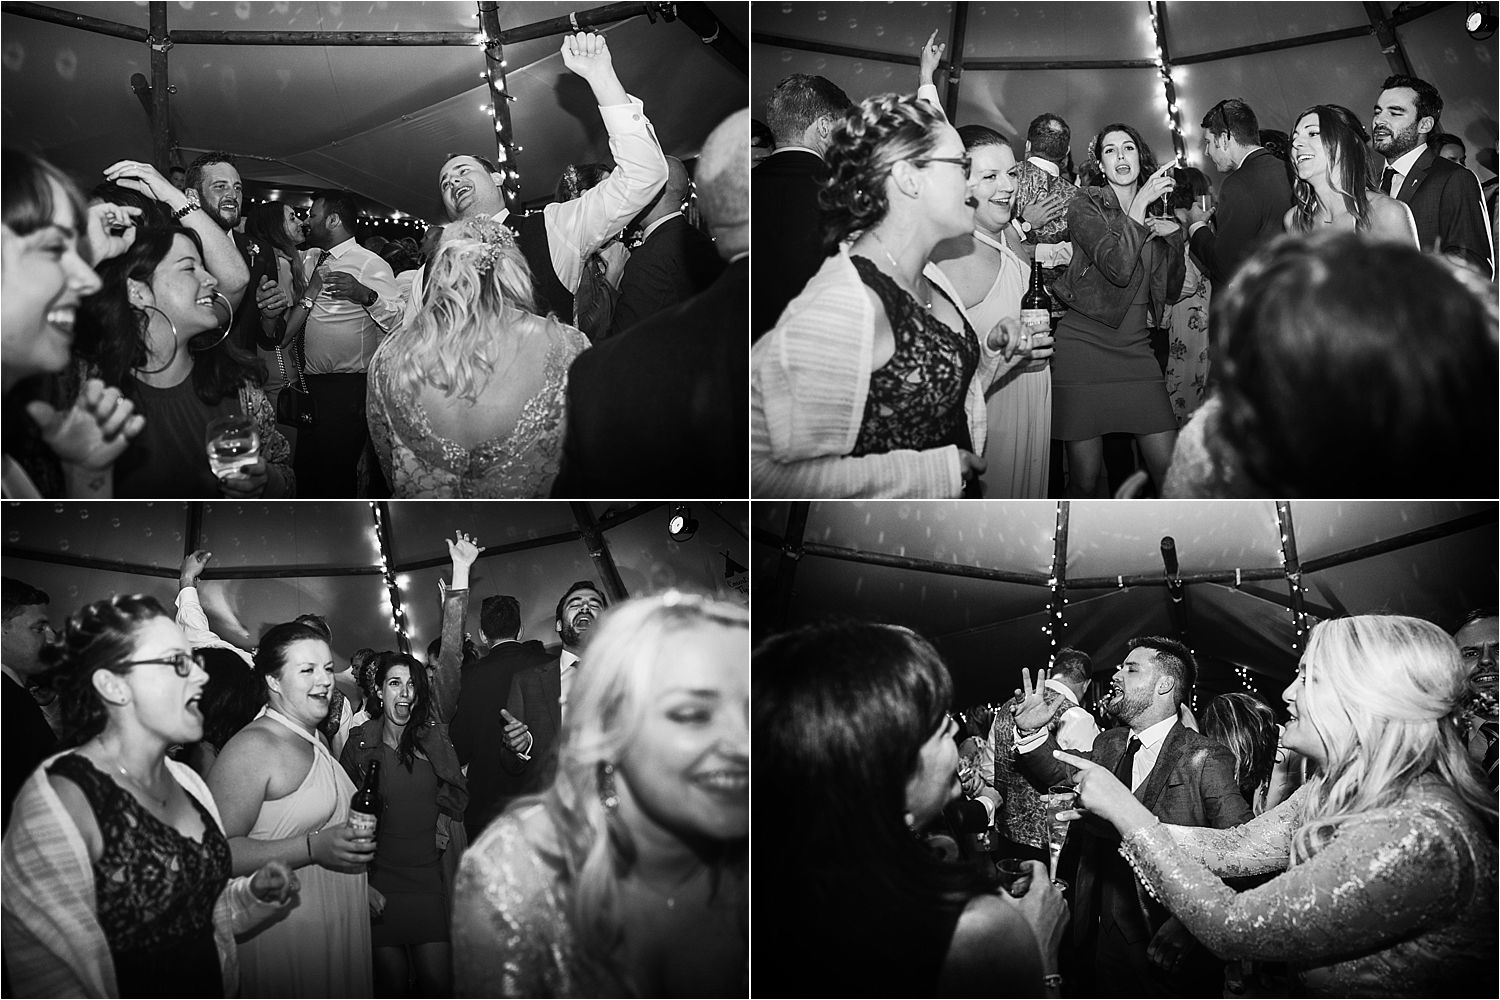 Guests enjoying dancing at evening reception in Country Tipis wedding tipi